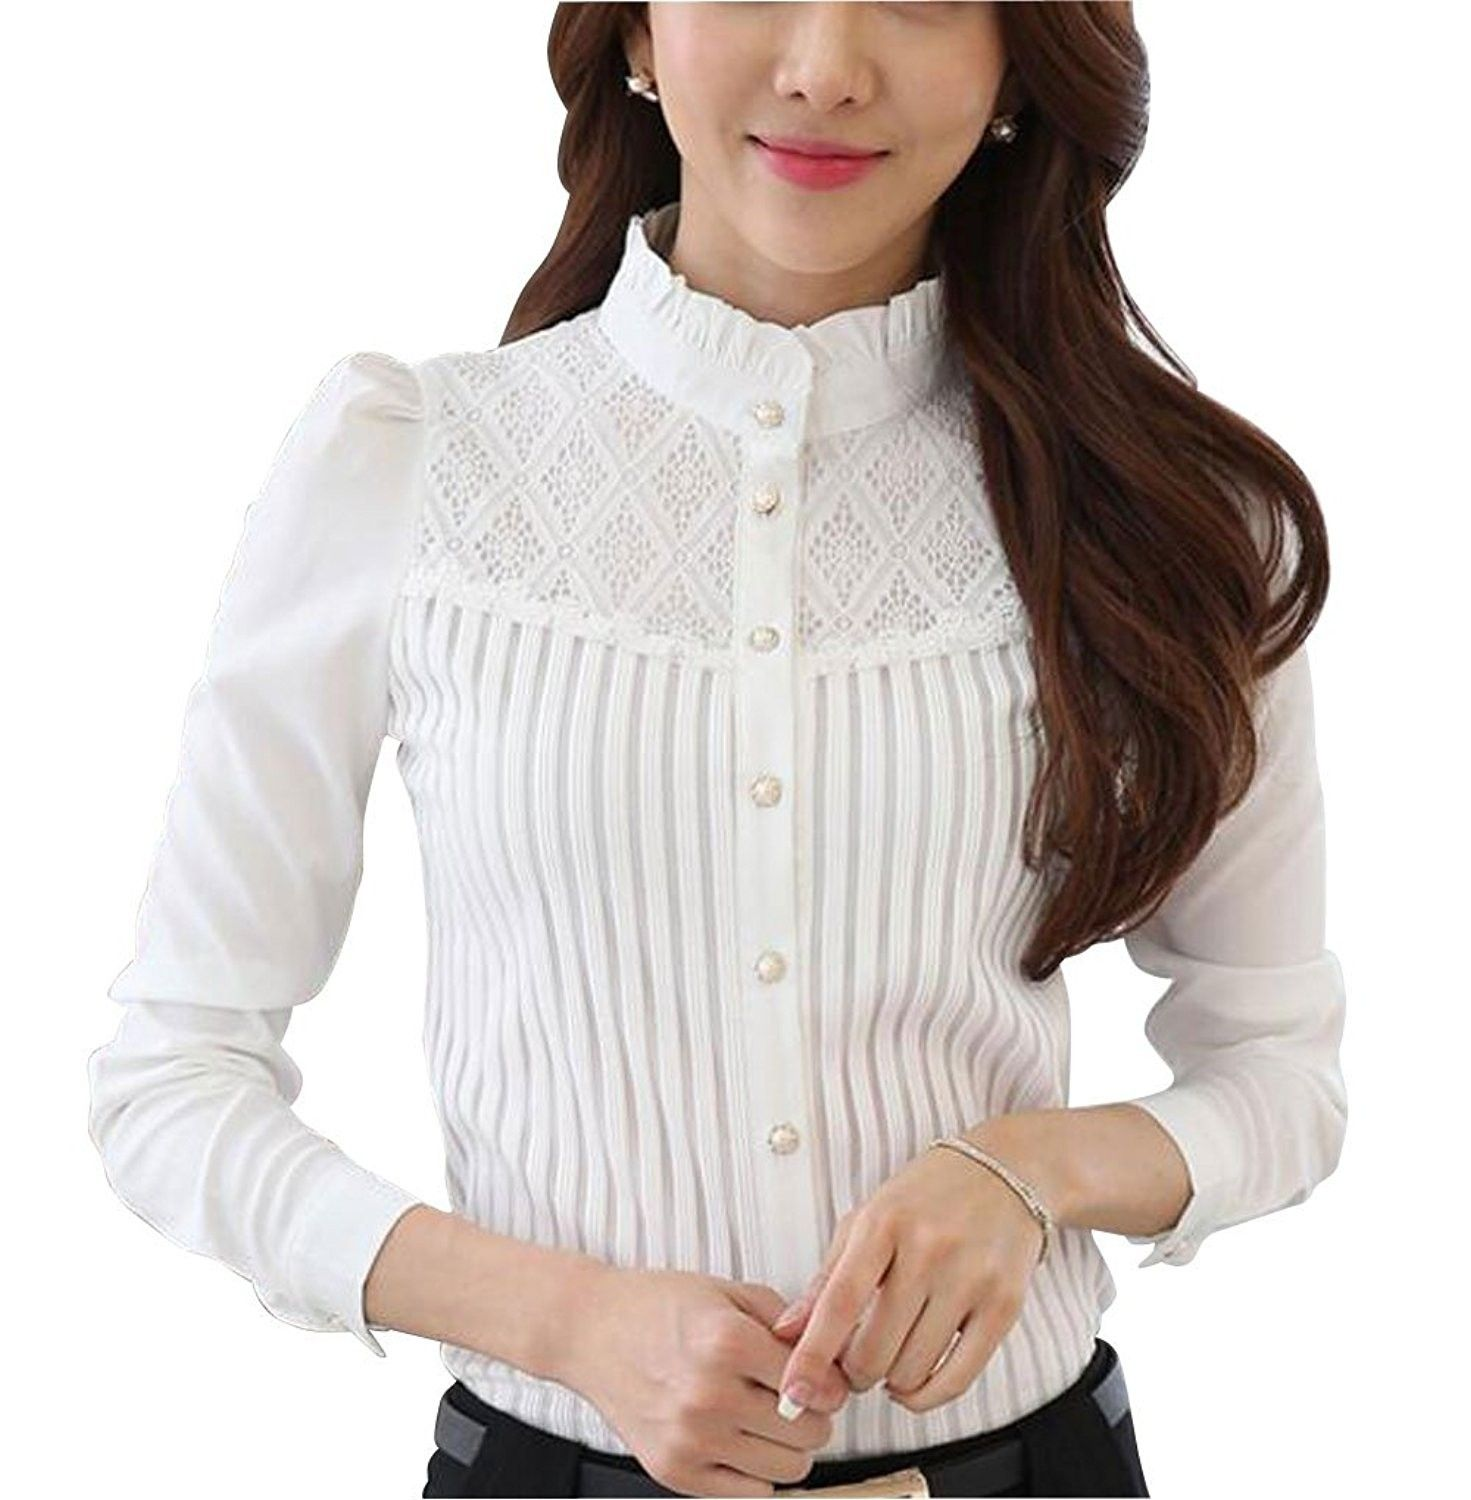 13c7a403 Women's Clothing, Tops & Tees, Blouses & Button-Down Shirts, DPO Women's  Vintage Collared Pleated Button Down Shirt Long Sleeve Lace Blouse - Stand  Up White ...